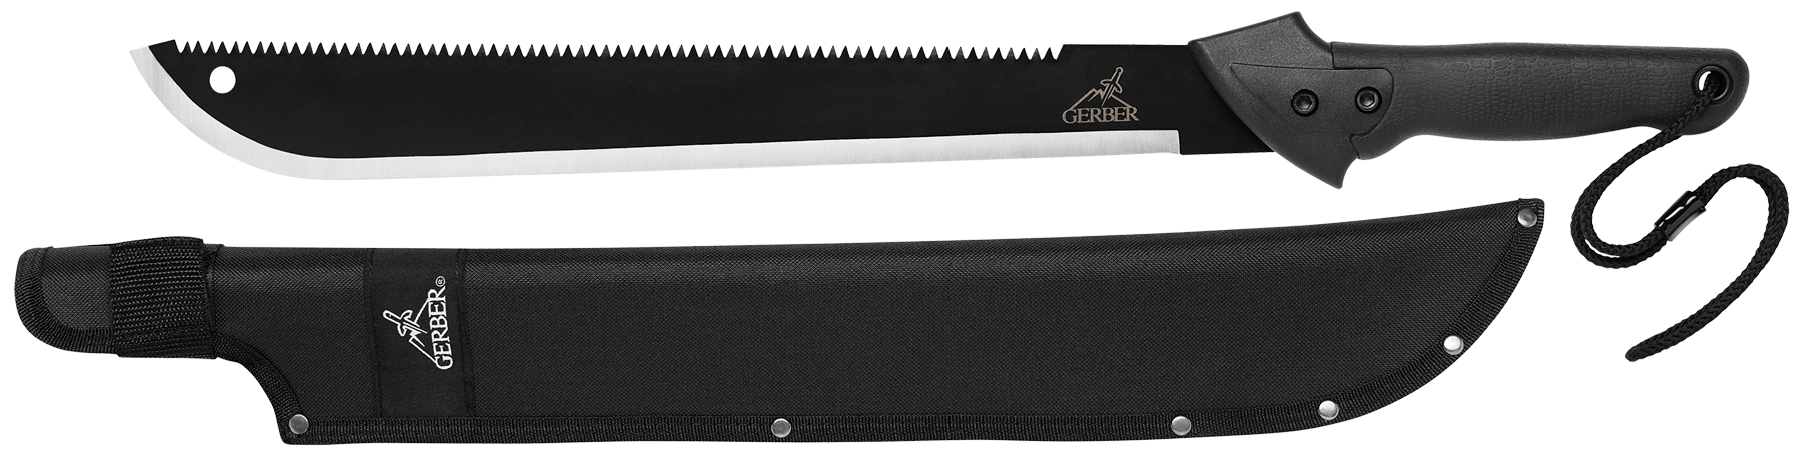 Gerber 000758 Gator Machete High Carbon Steel Clip Point/Saw Blade